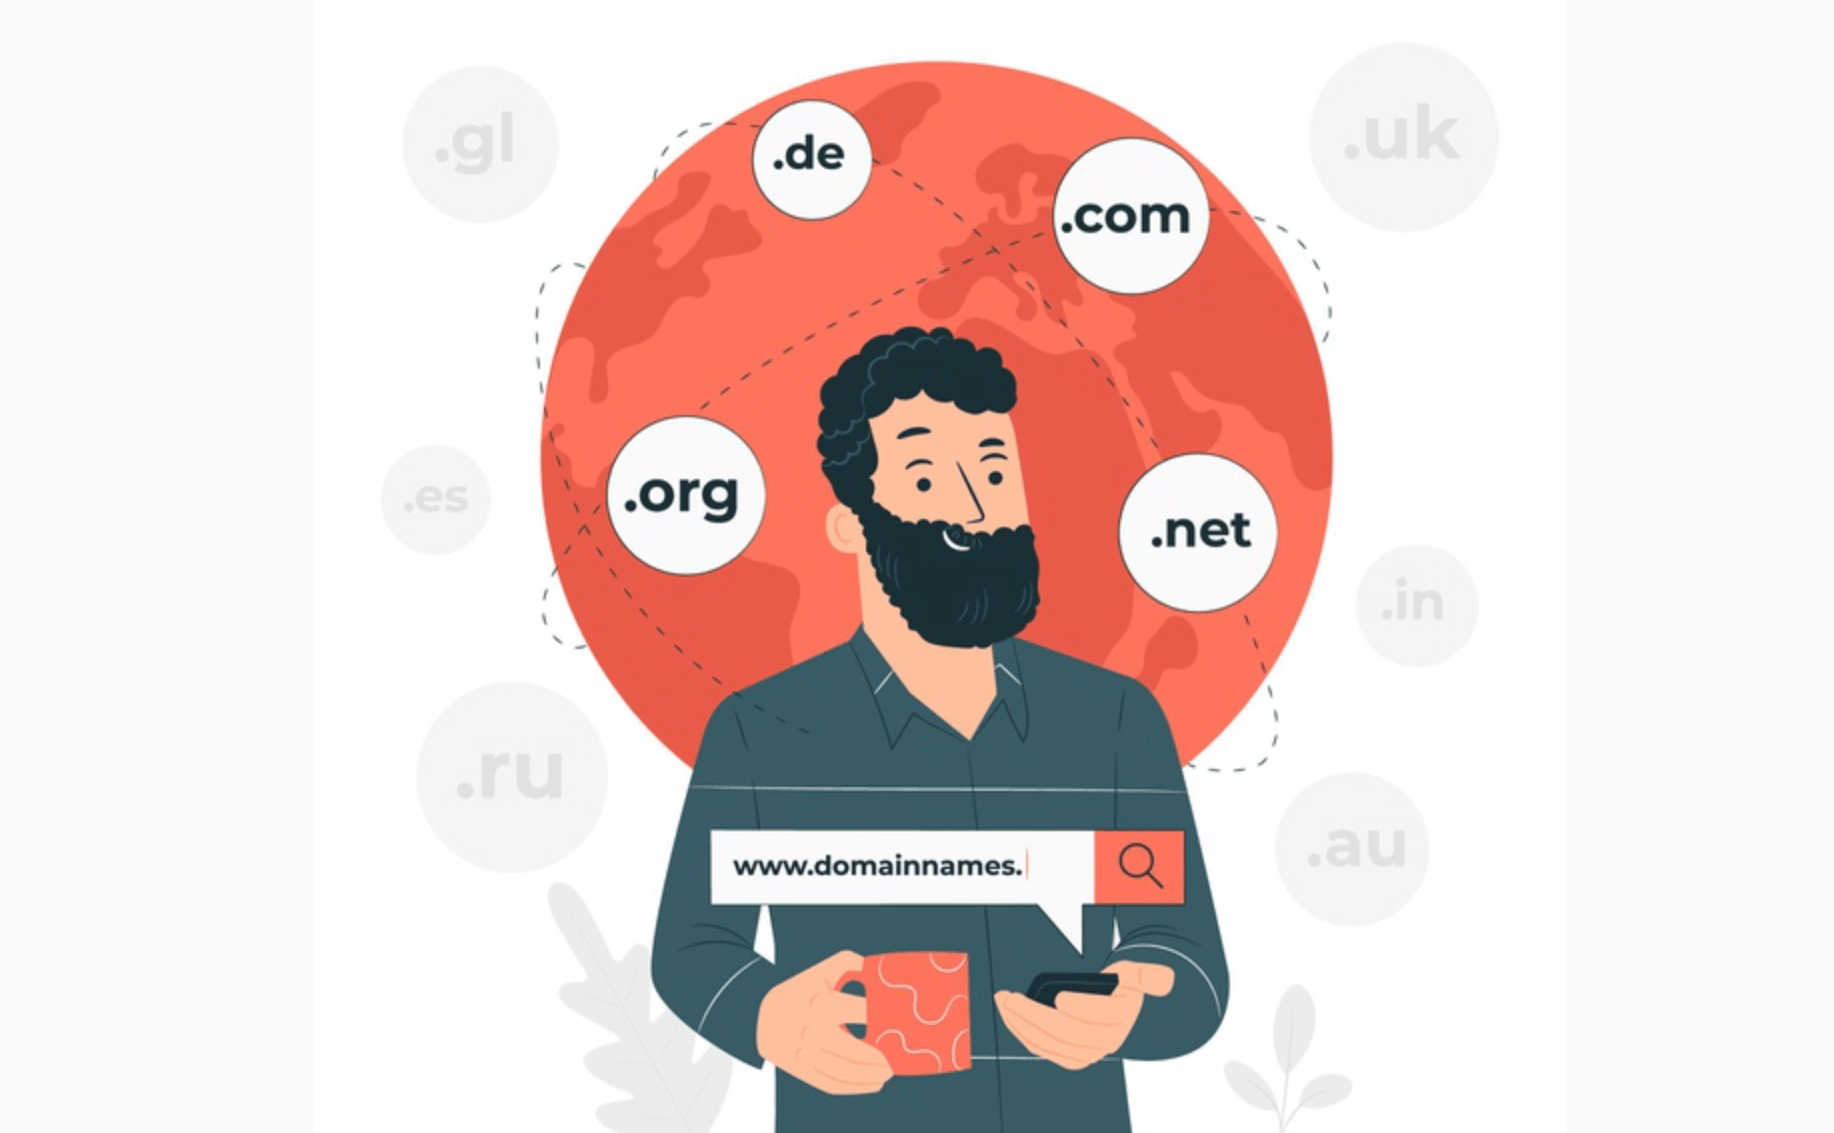 Choose your website domain name